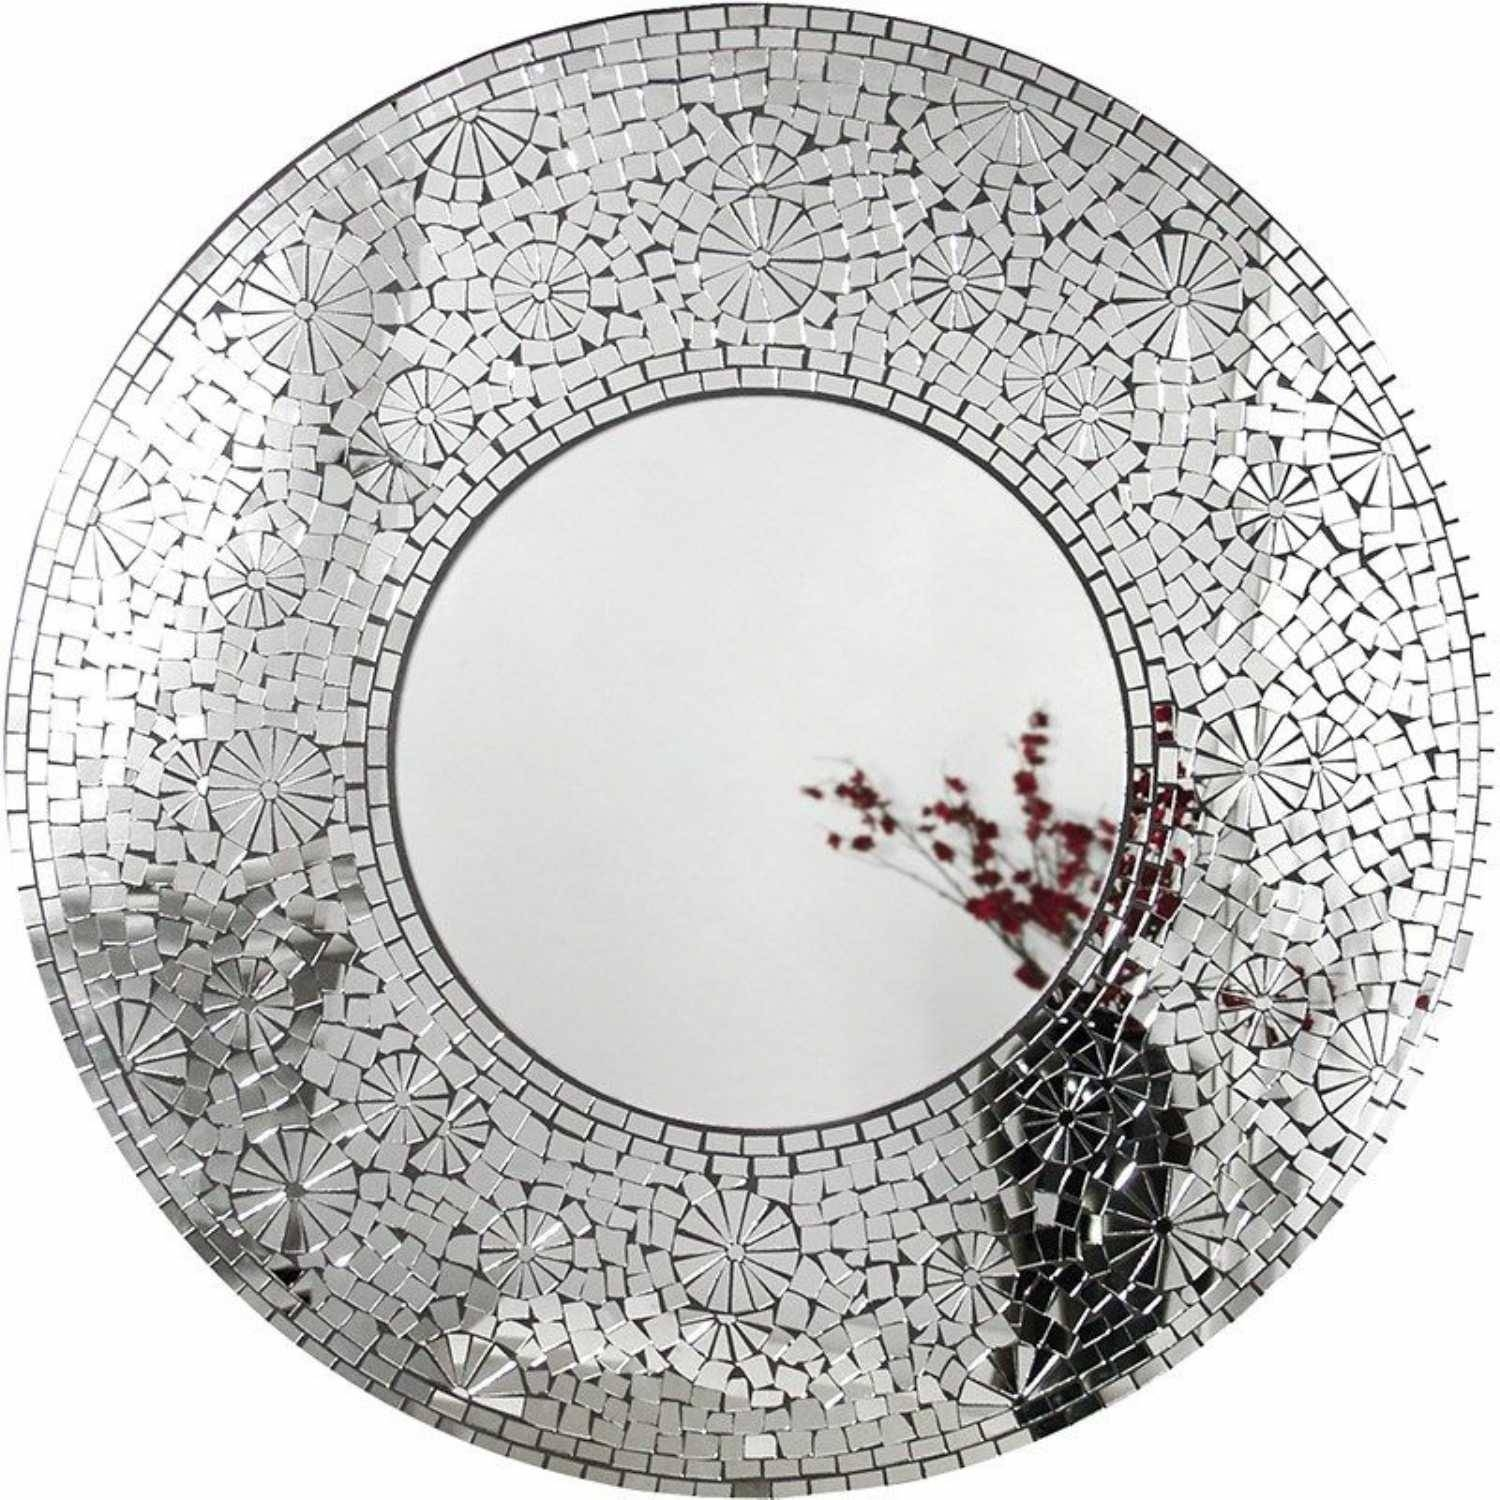 Interesting Modern Round Mirrors Wall Inside Ideas Pertaining To Large Circular Mirrors (View 20 of 25)